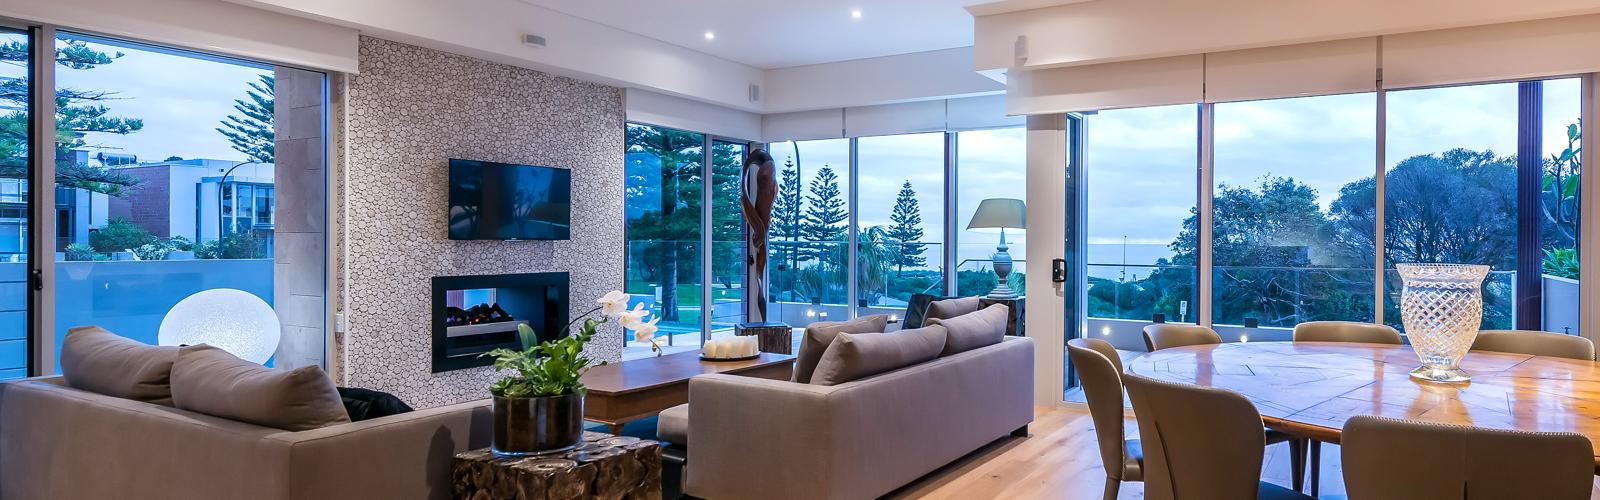 Glass Perth | Glazing, Glass Windows, Glass Doors - West Perth Glass, WA